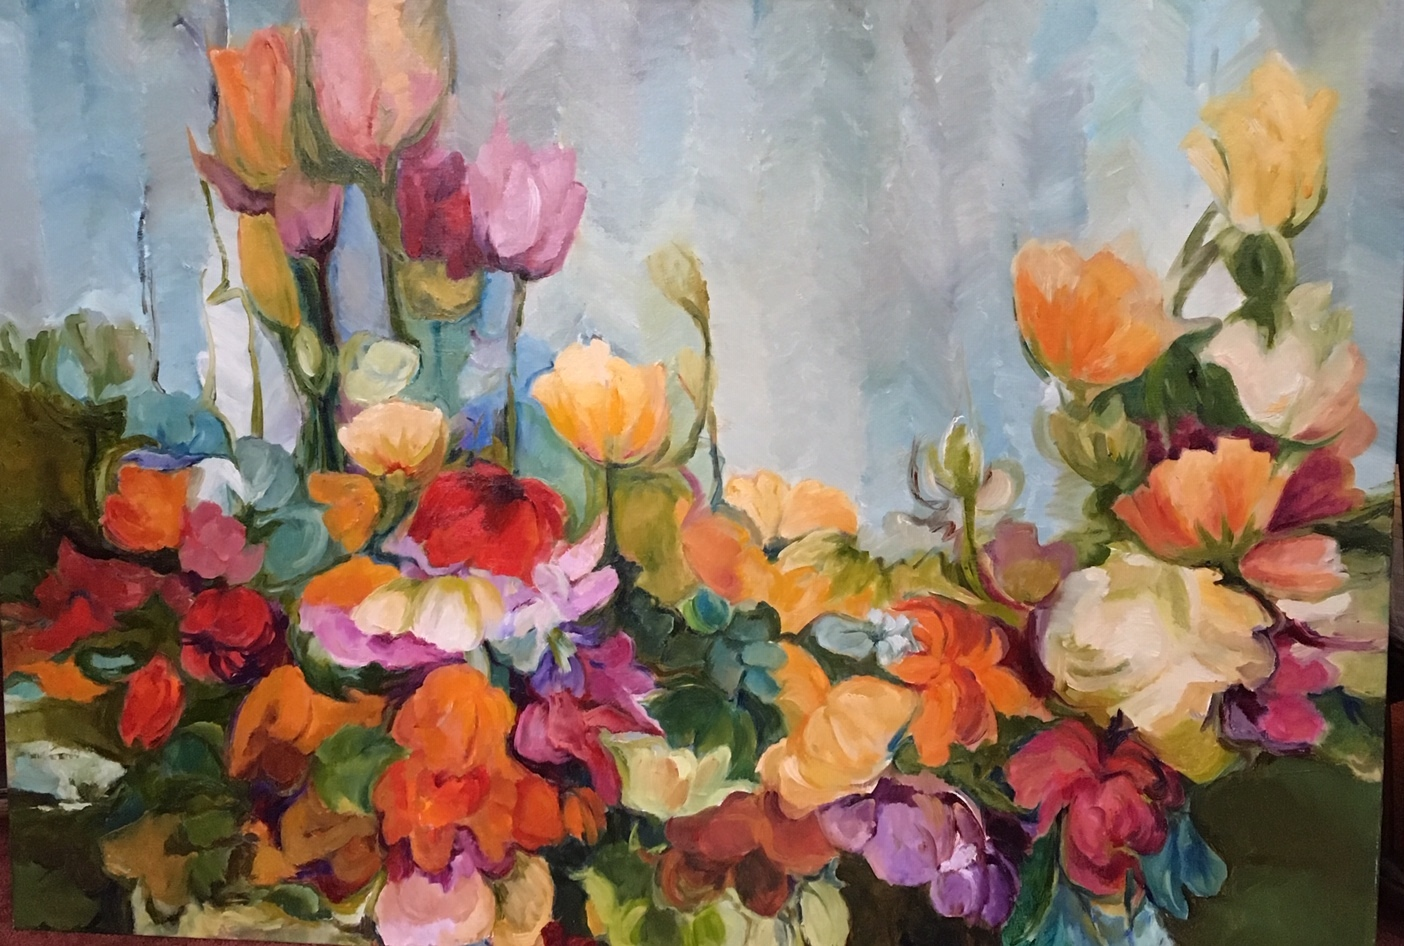 Conservative Flowers, 34 x 48 inches